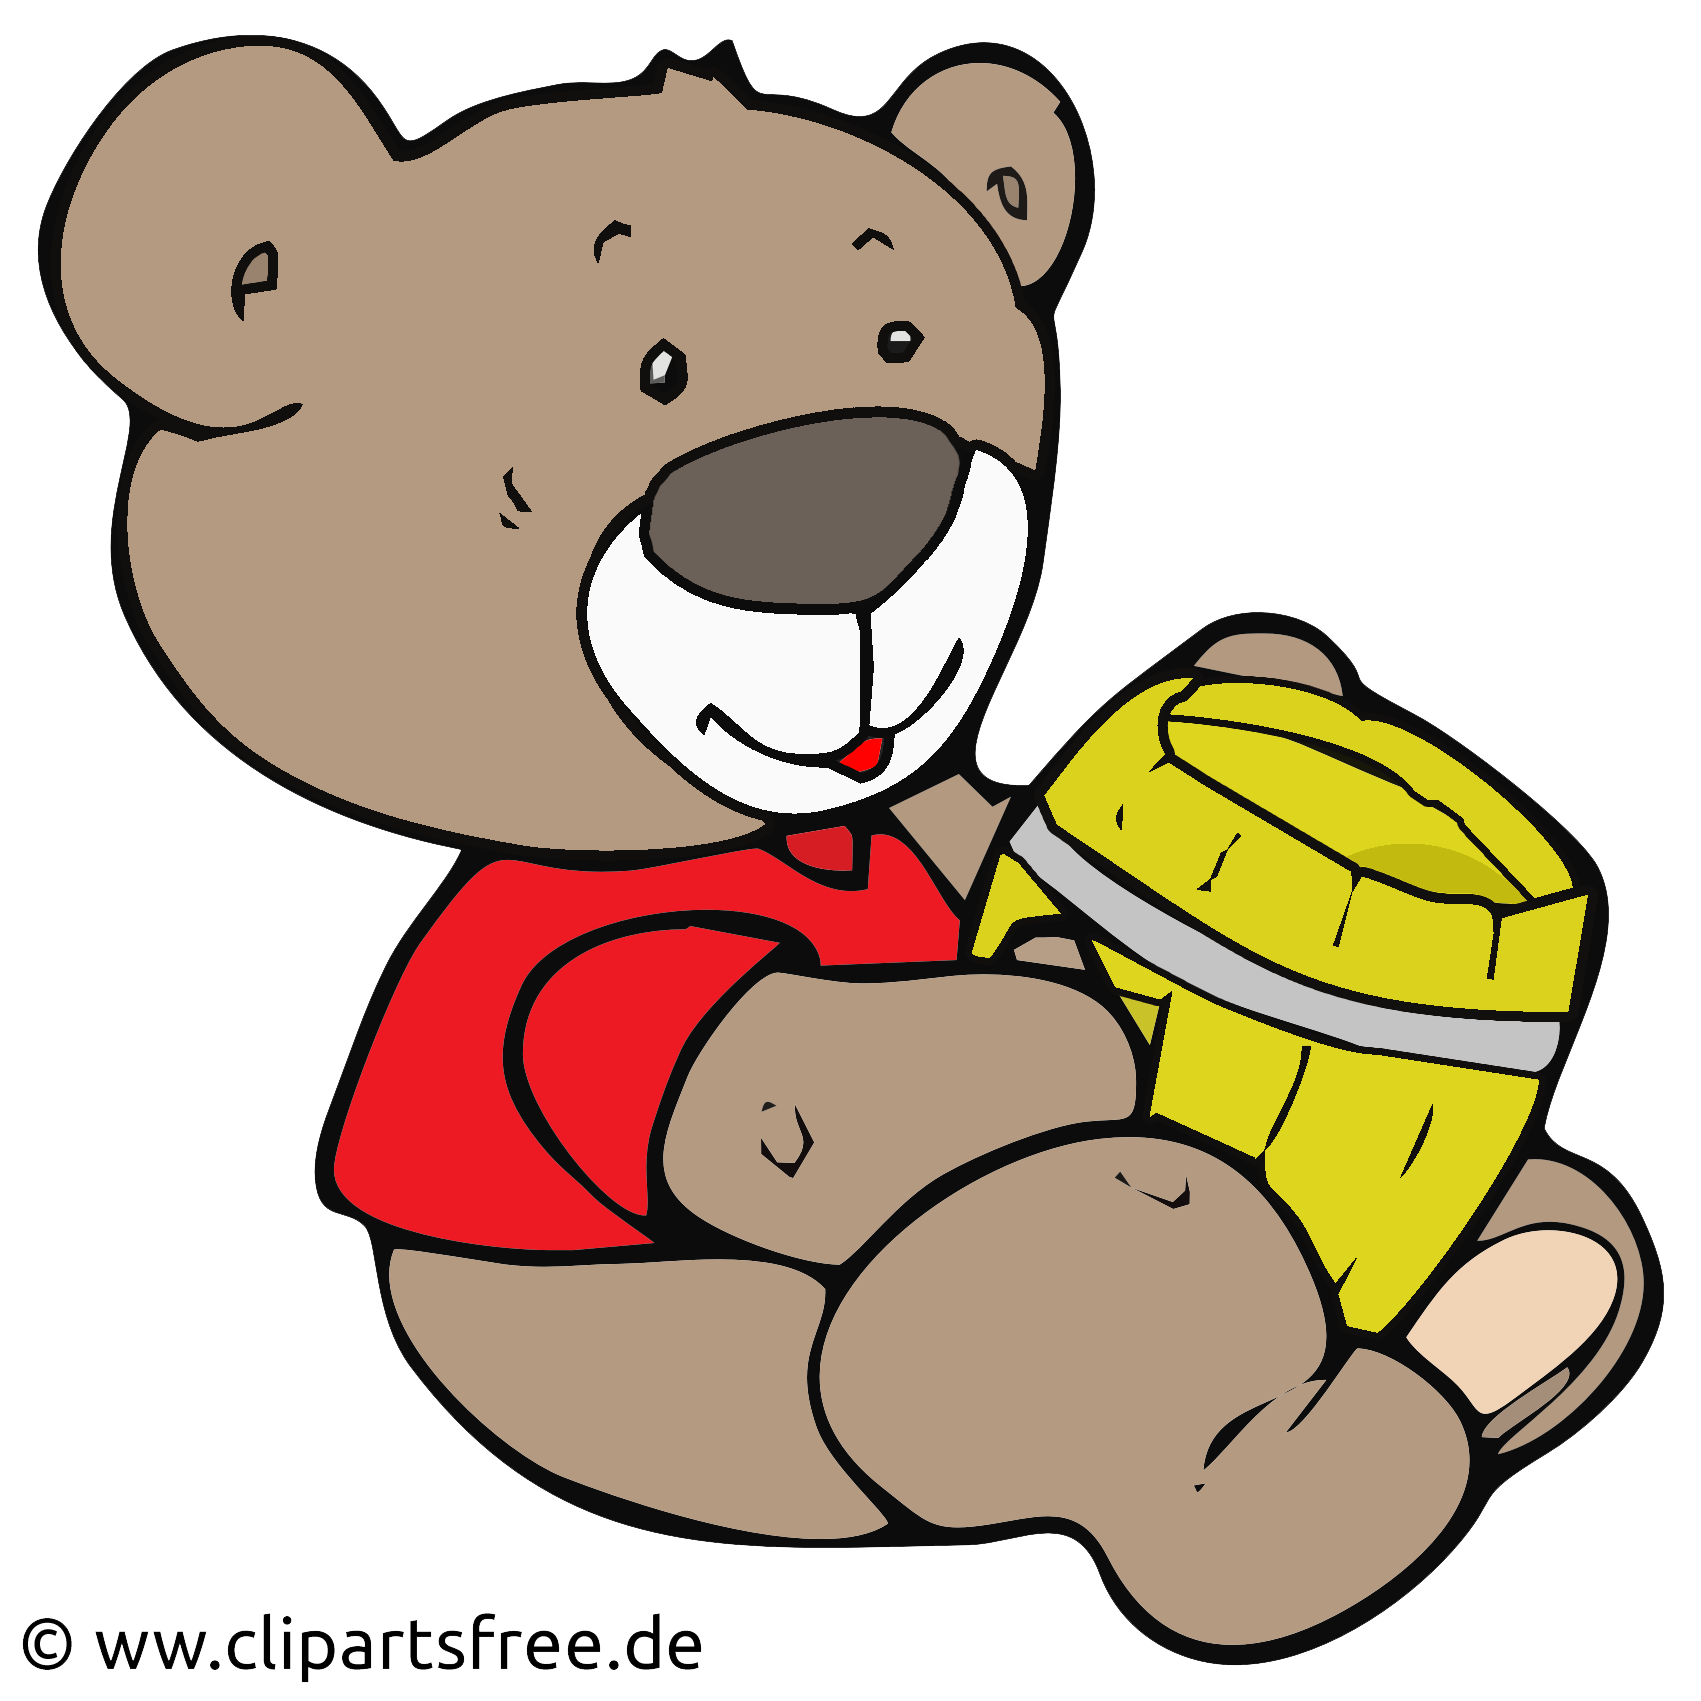 Baer mit Honig Clip Art, Cartoon, Illustration